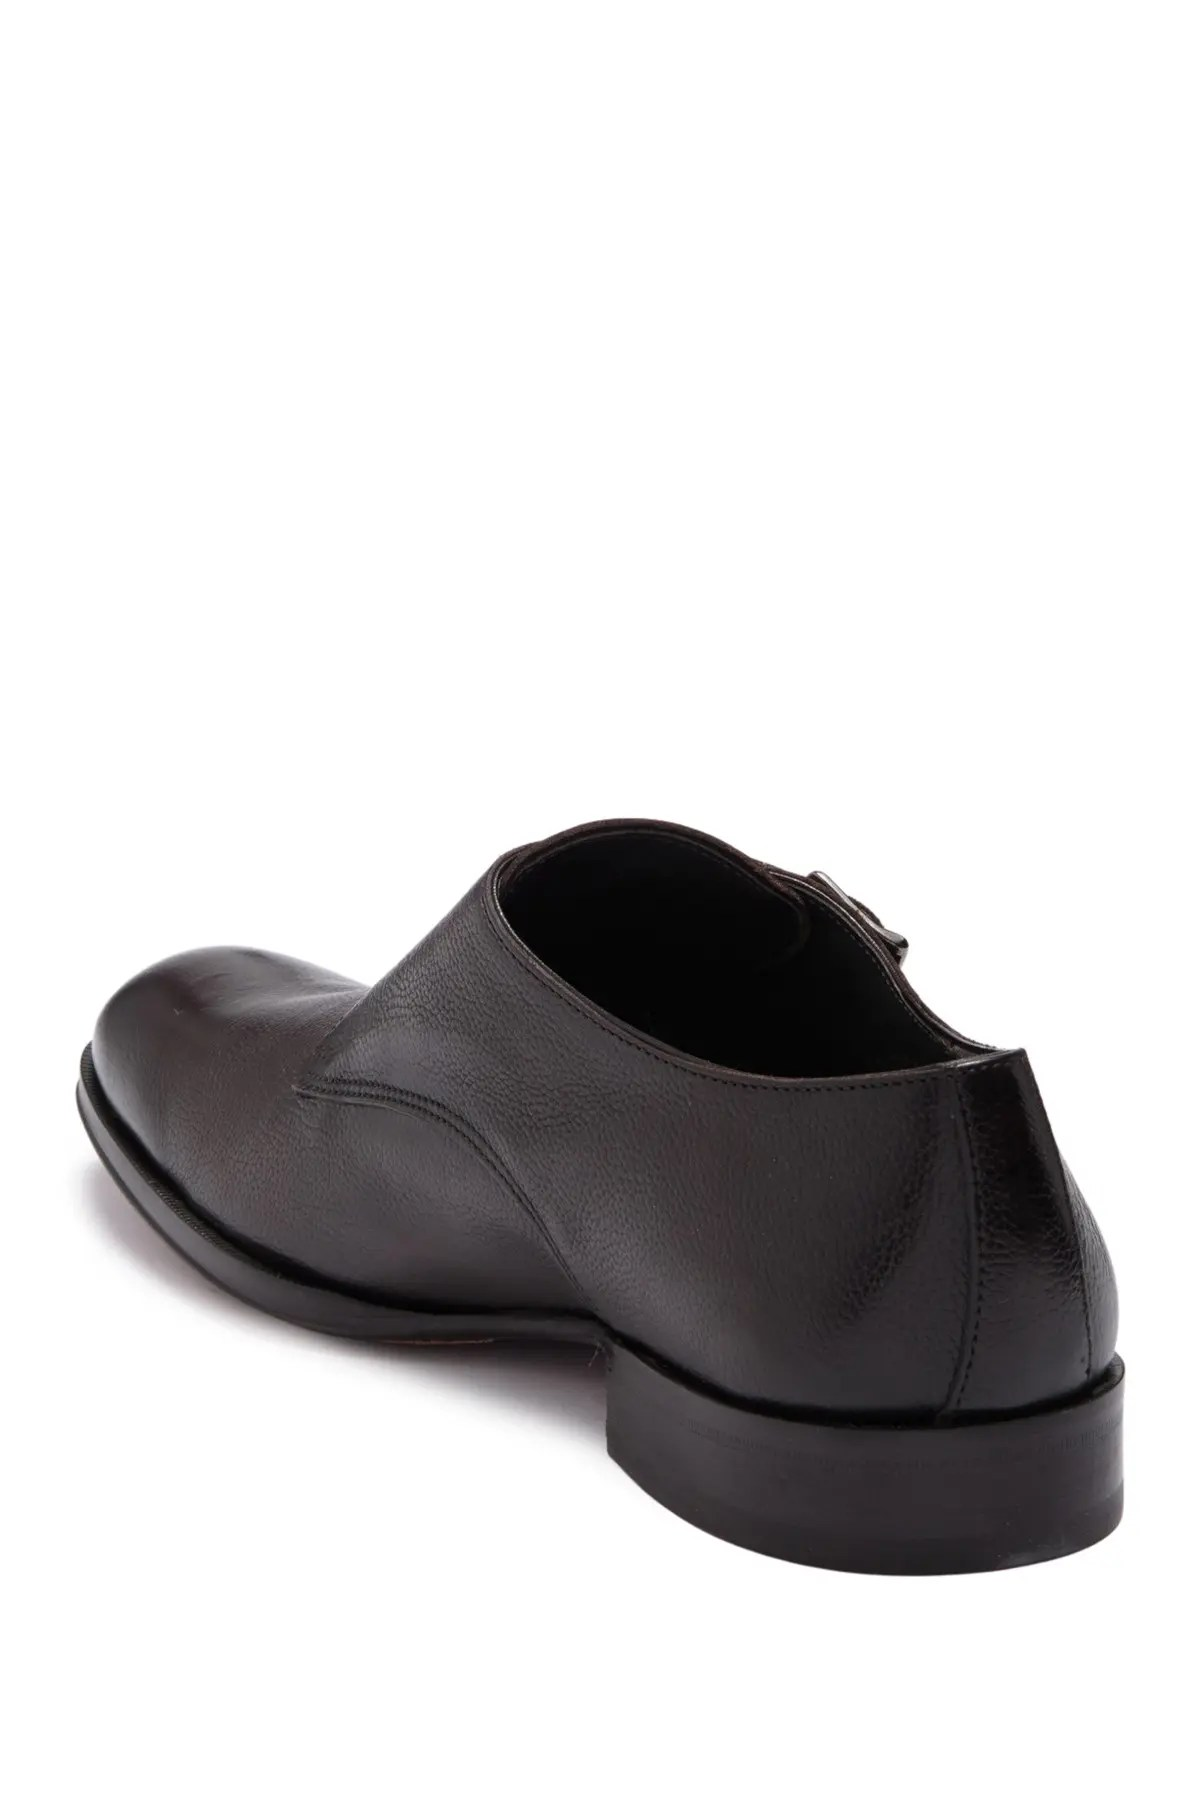 to boot new york wicker leather monk strap shoe nordstrom rack